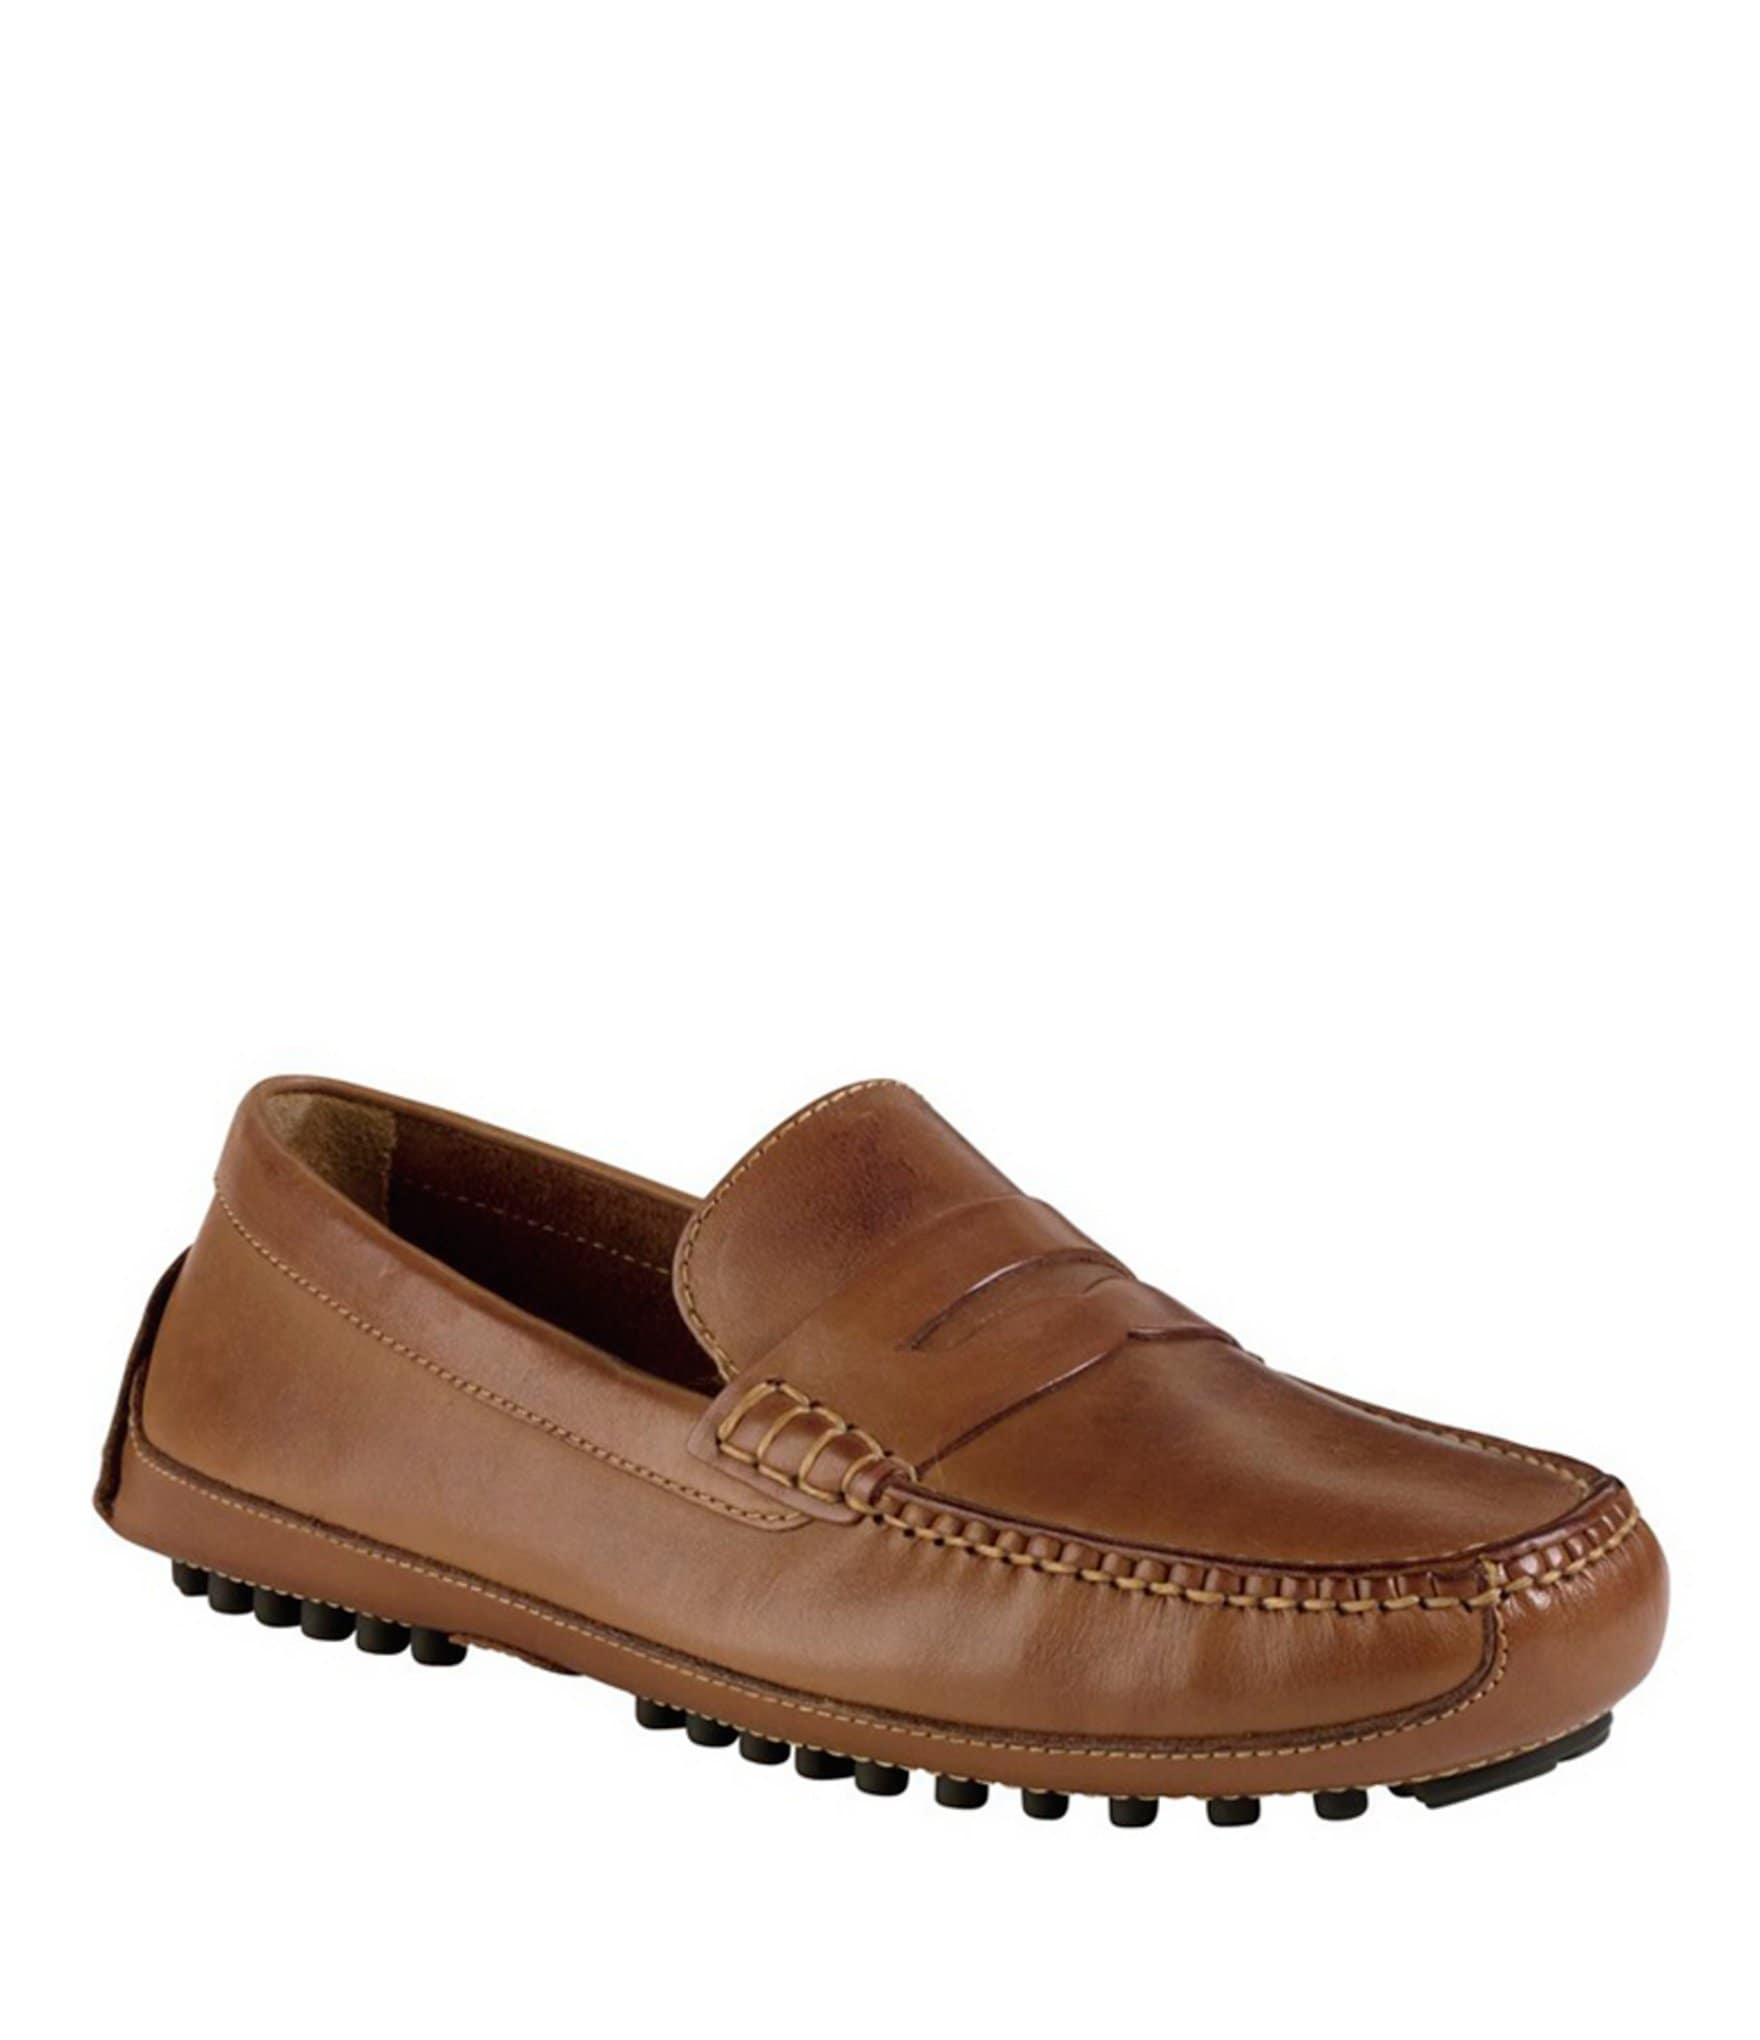 Dillards Cole Haan Womens Shoes